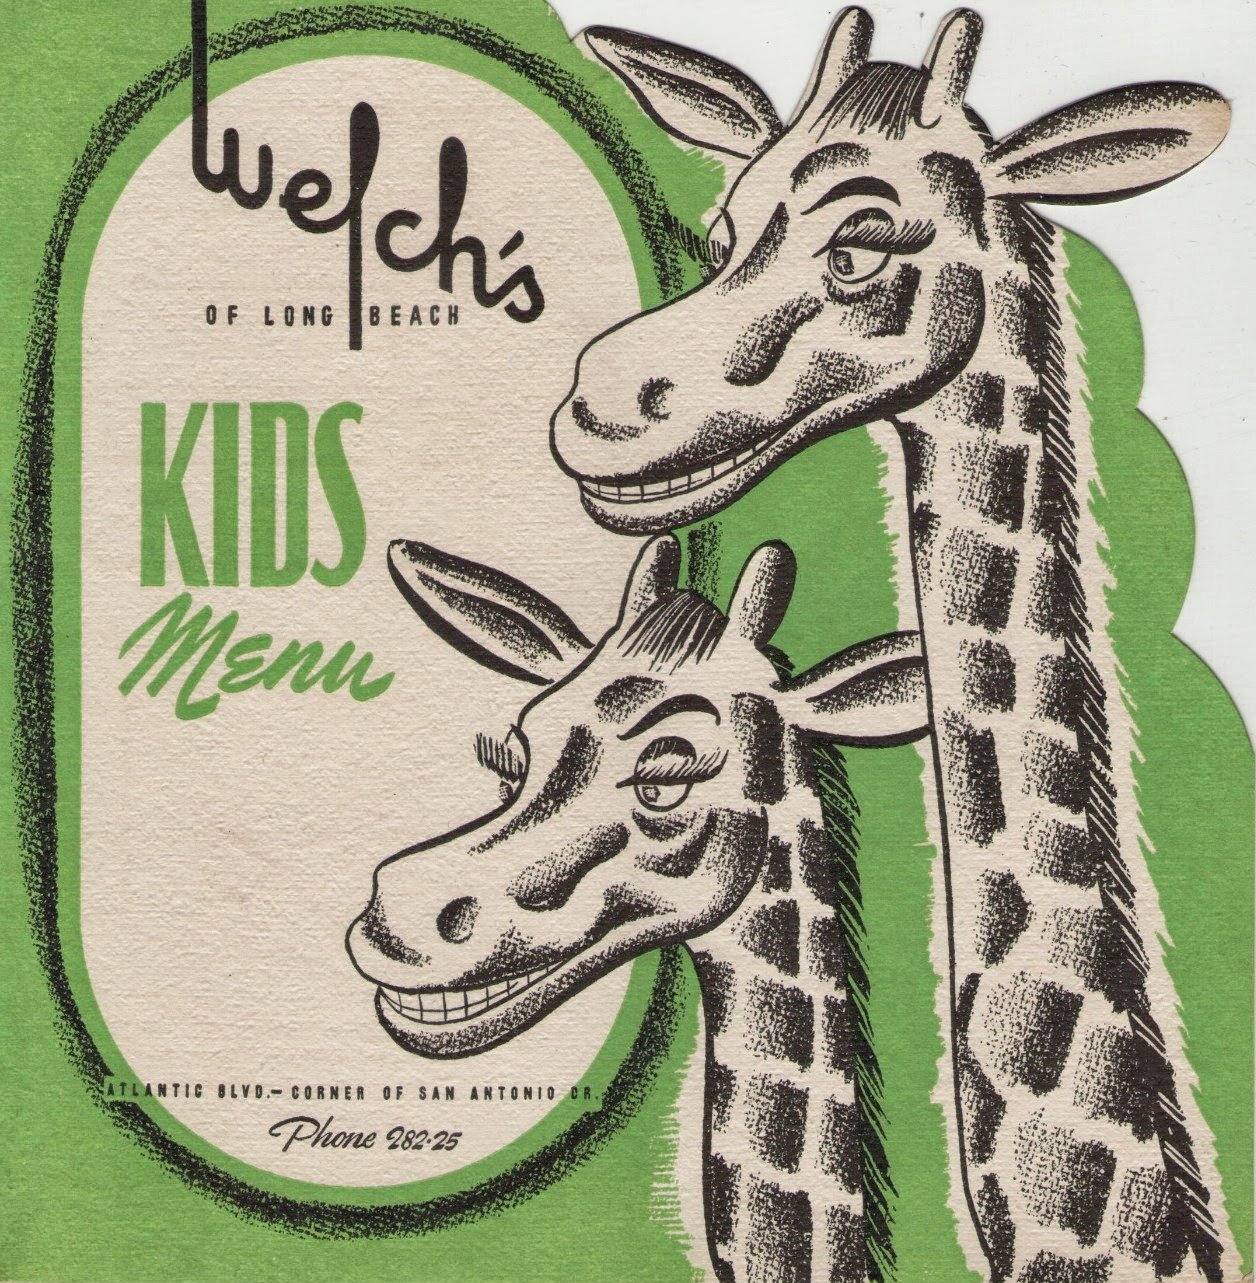 Vintage Welch's of Long Beach Kid's Menu via Brentwood Lane